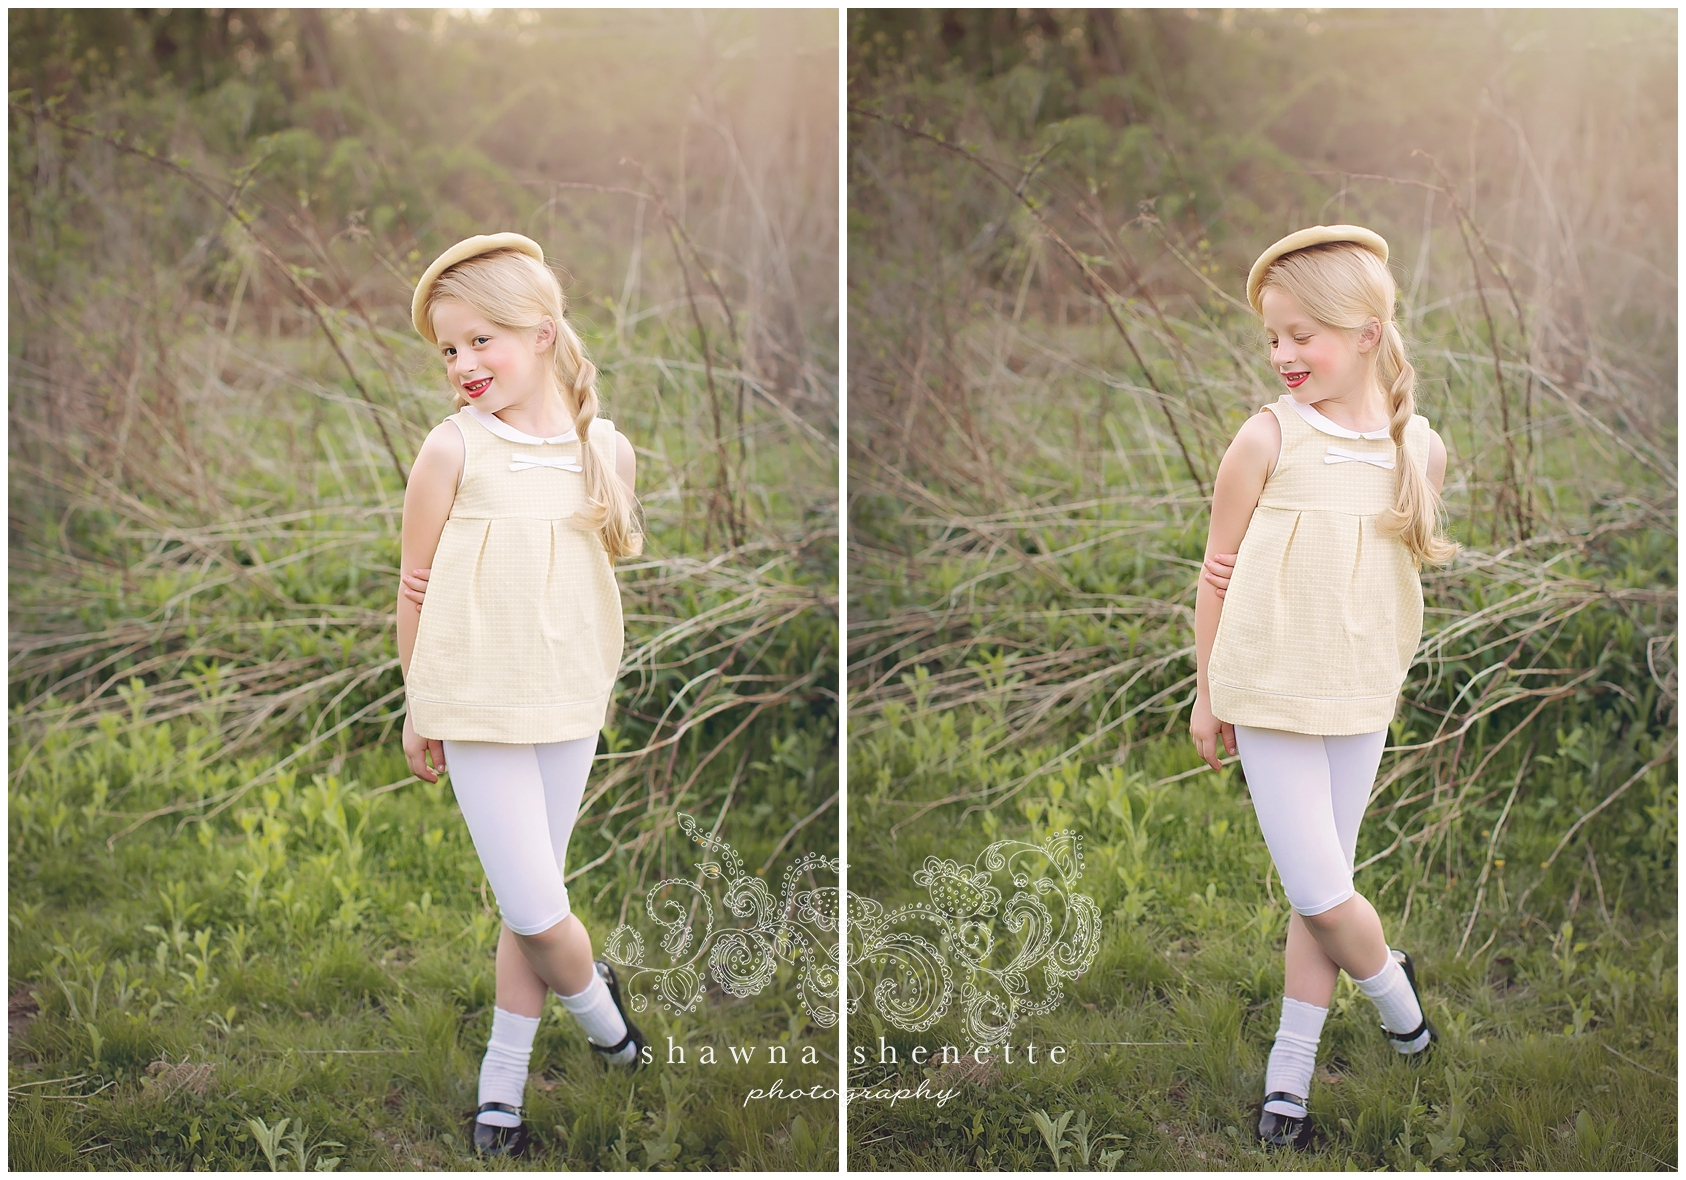 Millbury Child Photographer Outdoor Portraits Children Grafton Worcester Sutton Auburn Shrewsbury